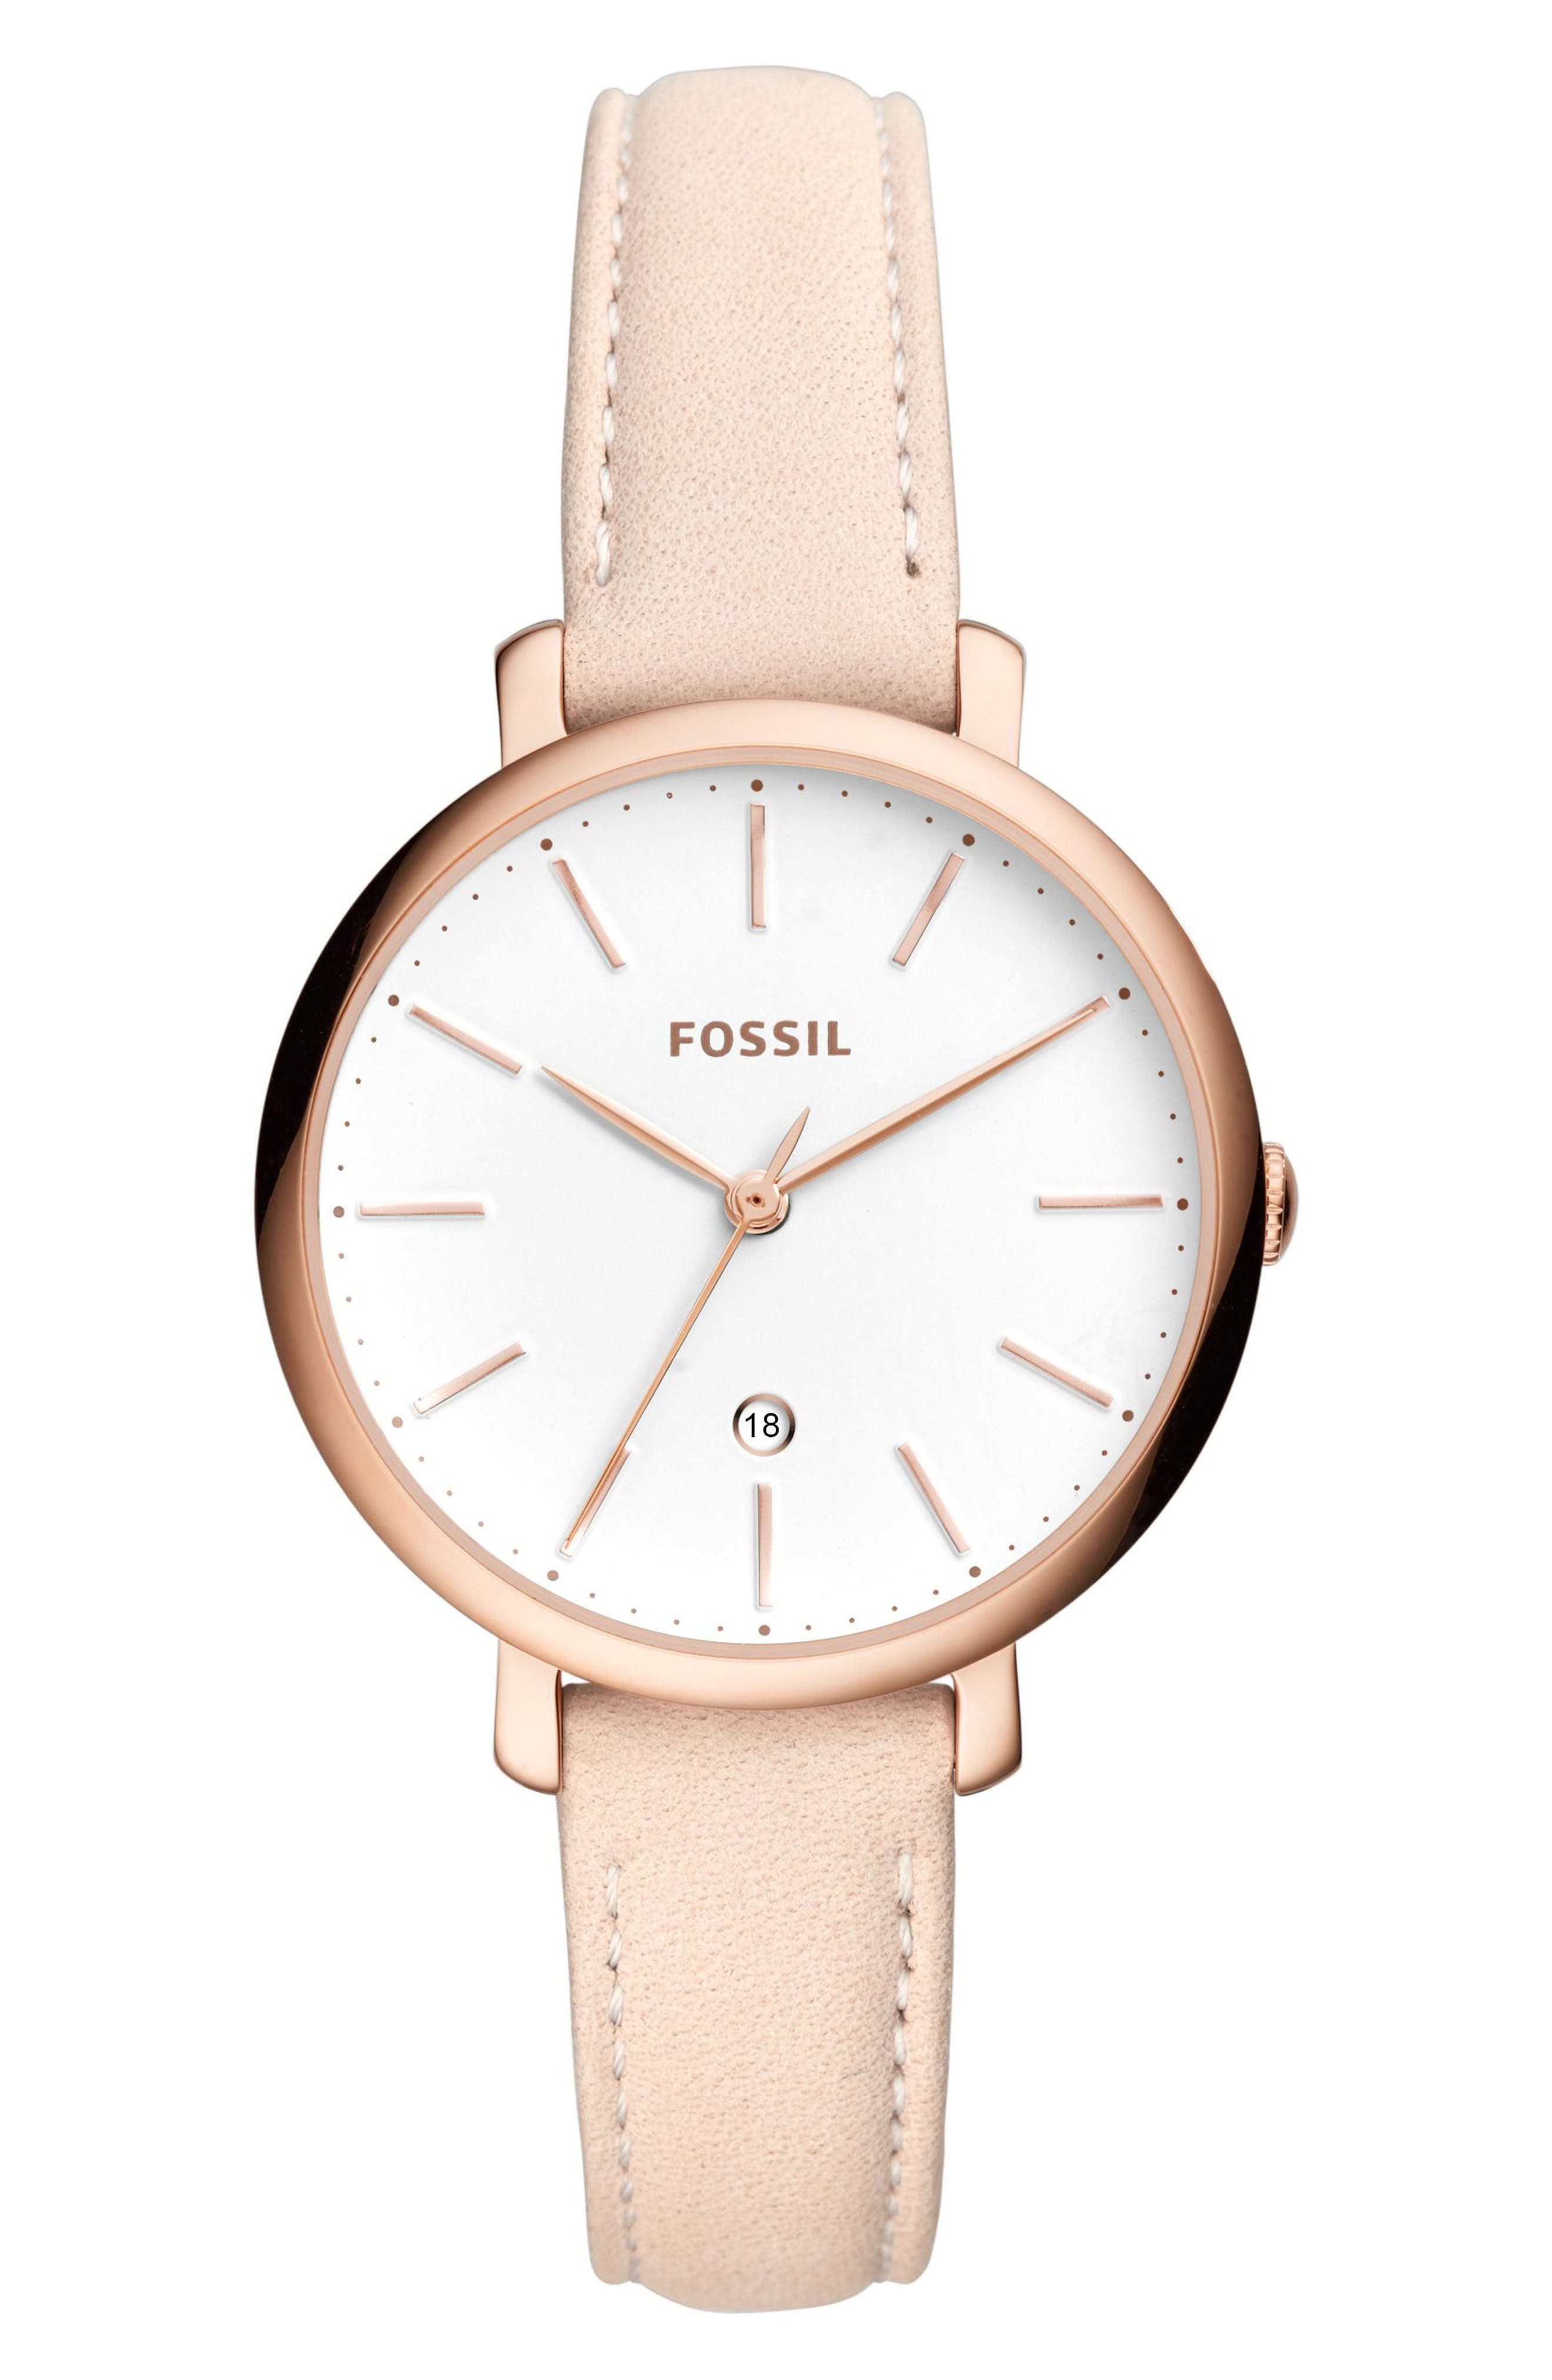 FOSSIL Jacqueline Leather Strap Watch, 36mm, Main, color, BEIGE/ WHITE/ ROSE GOLD